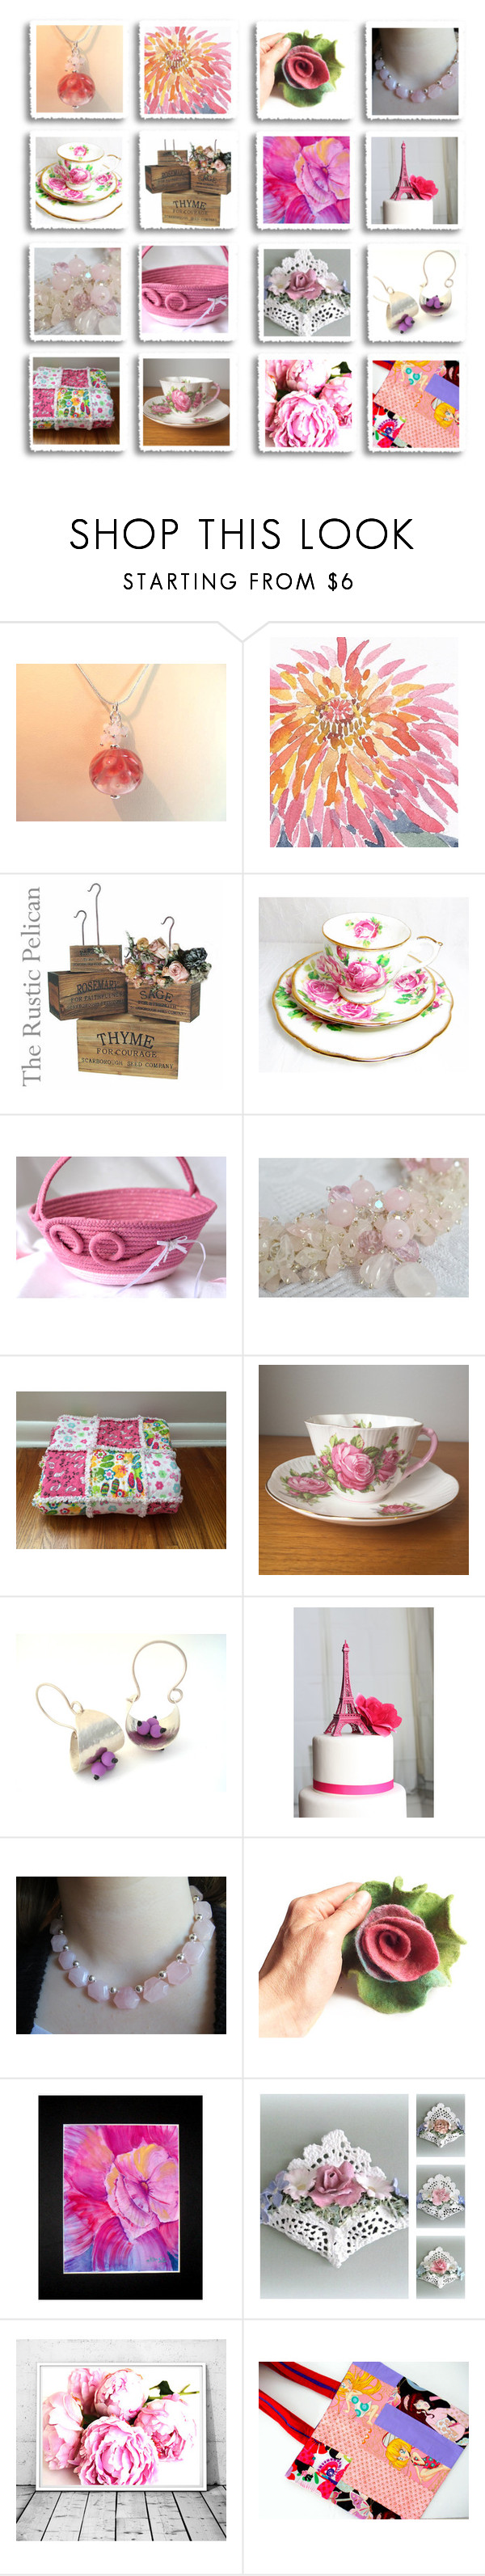 Revisiting Treasuries by inspiredbyten on Polyvore featuring мода and vintage